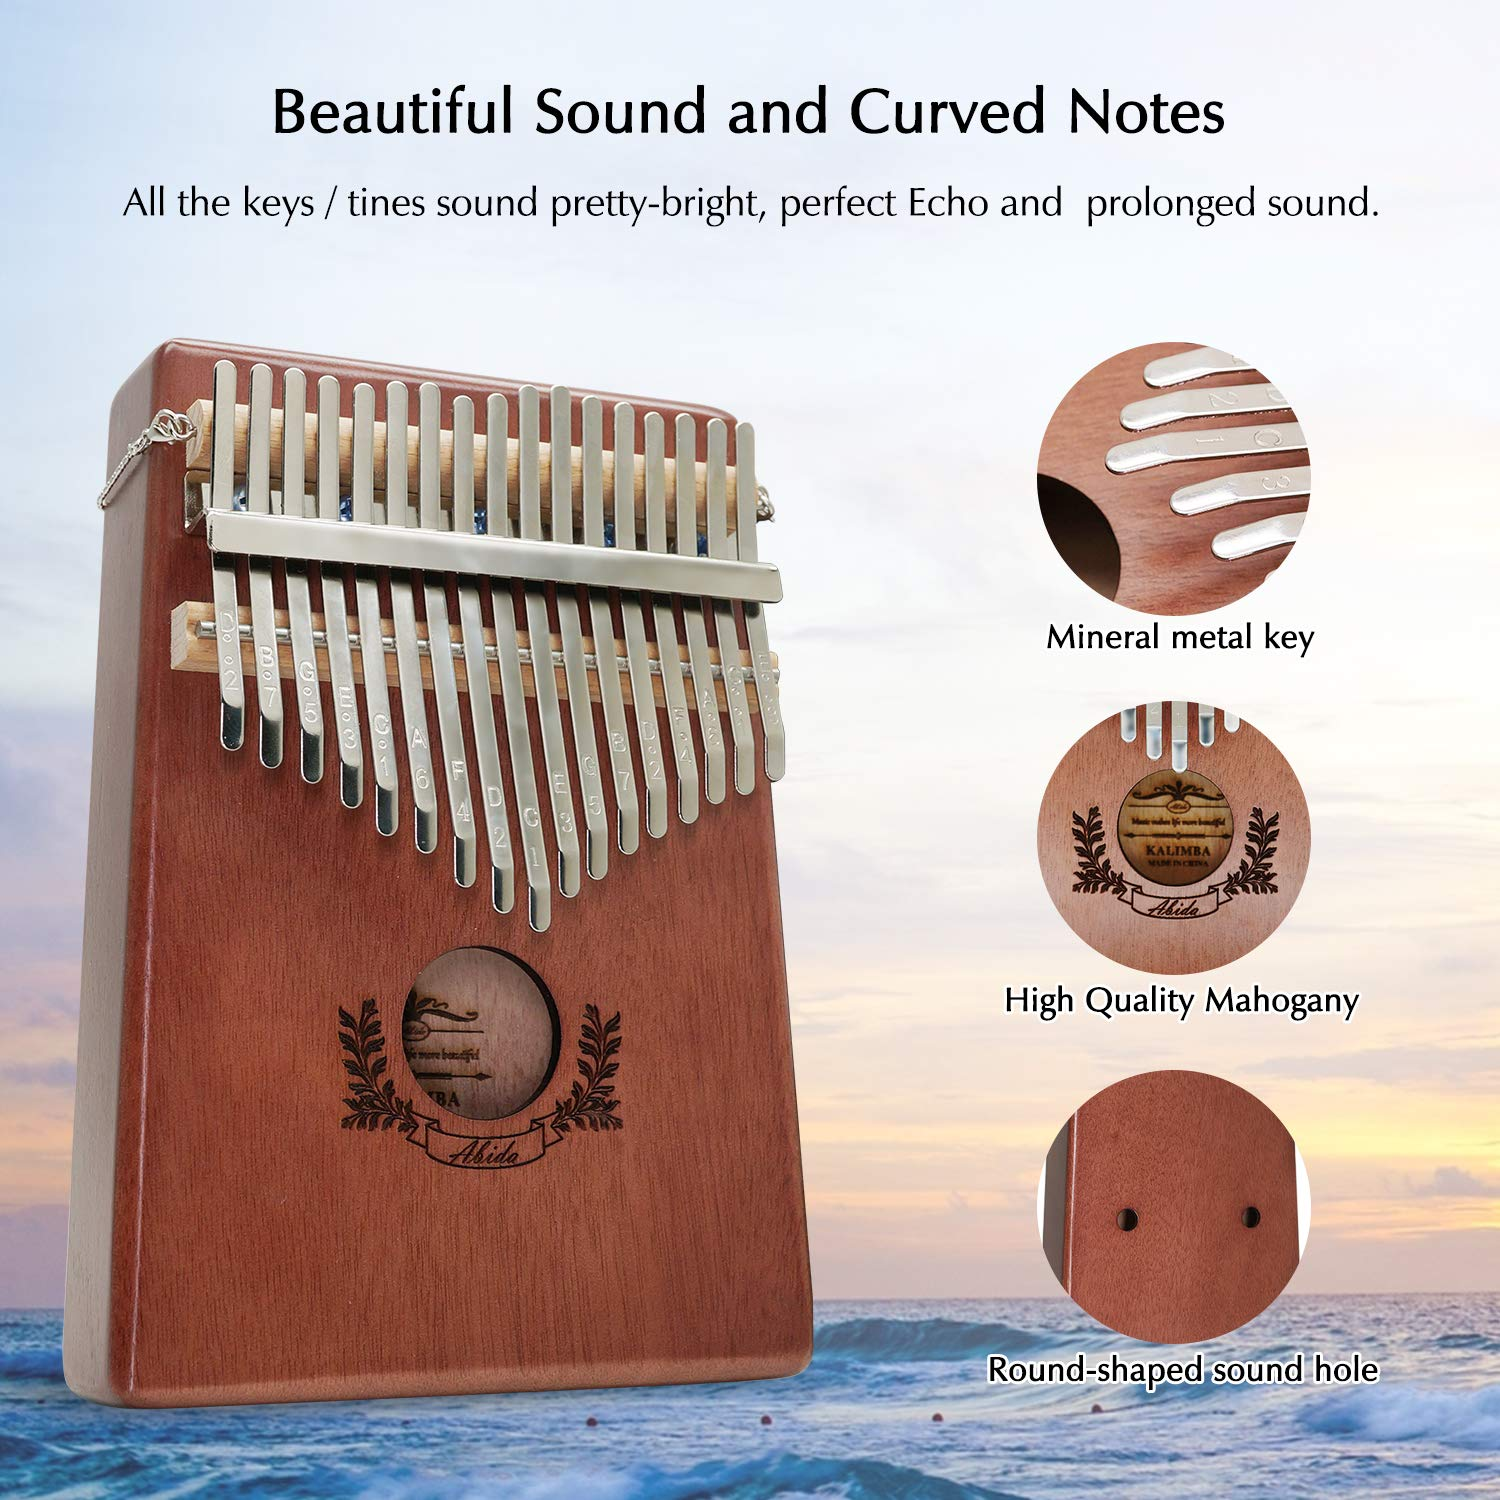 Kalimba, Abida Exquisite 17 Keys Thumb Piano with EVA Waterproof Case Study Instruction Tuning Hammer, Solid Finger Piano Mahogany Body Portable Musical Instrument Gifts for Kids and Adult Beginners by Abida (Image #3)